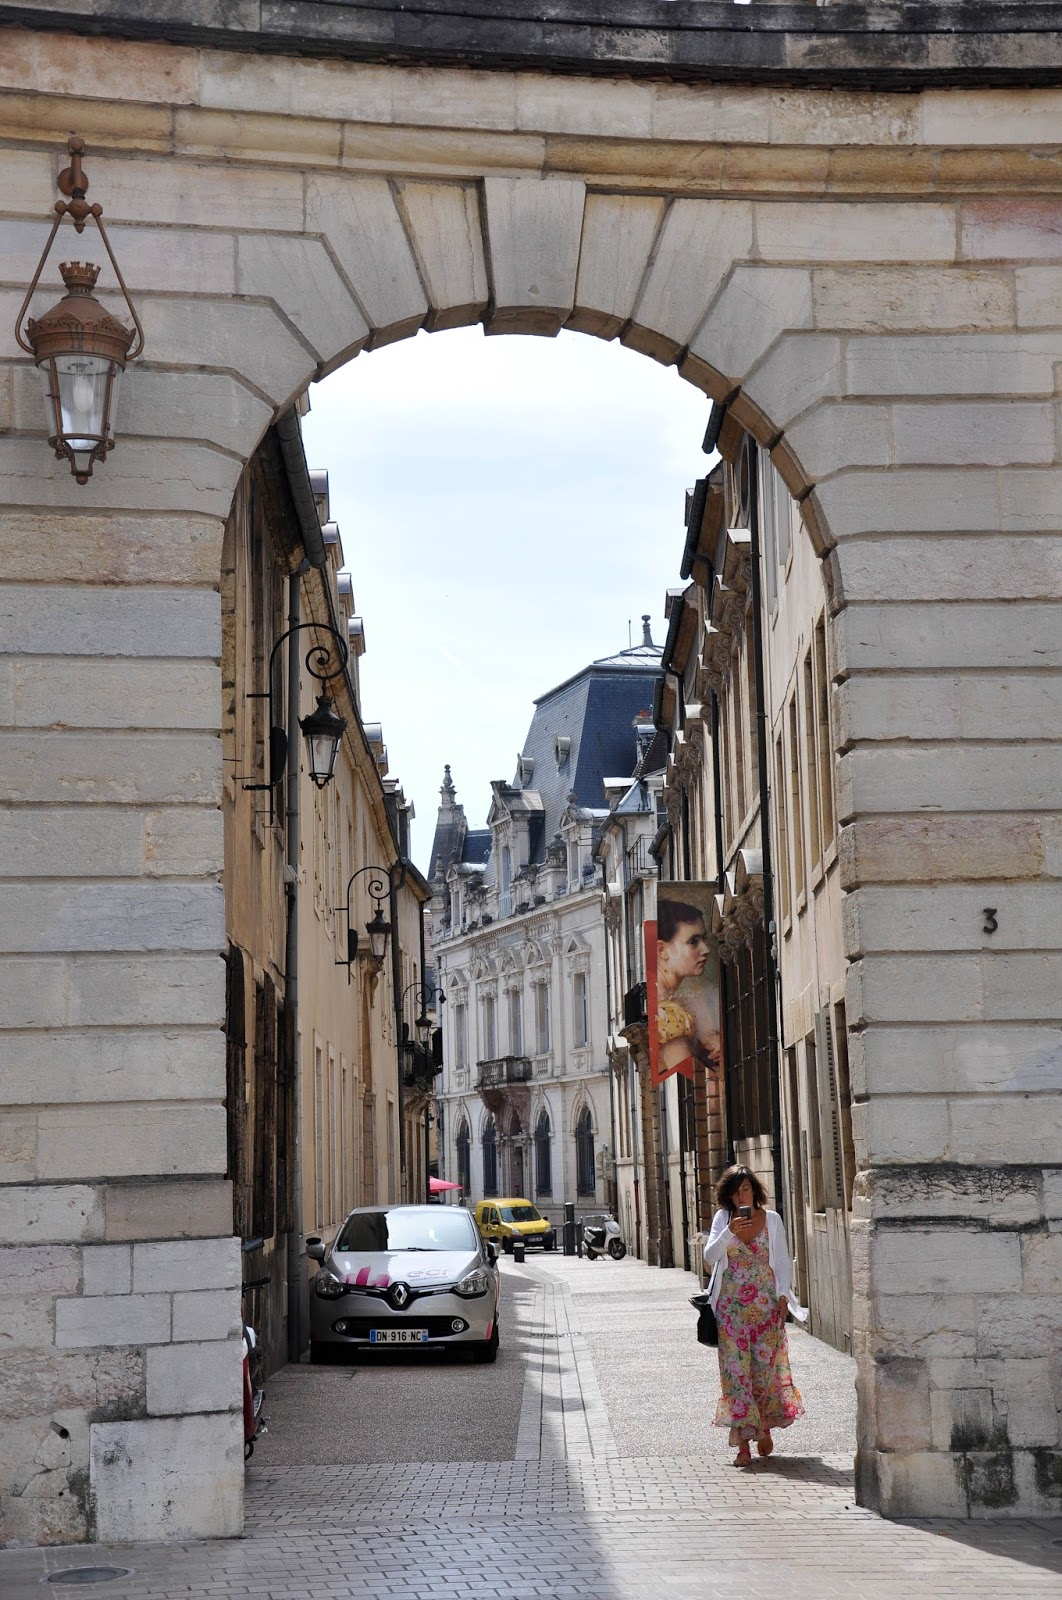 Street arch in Dijon, Burgundy, France